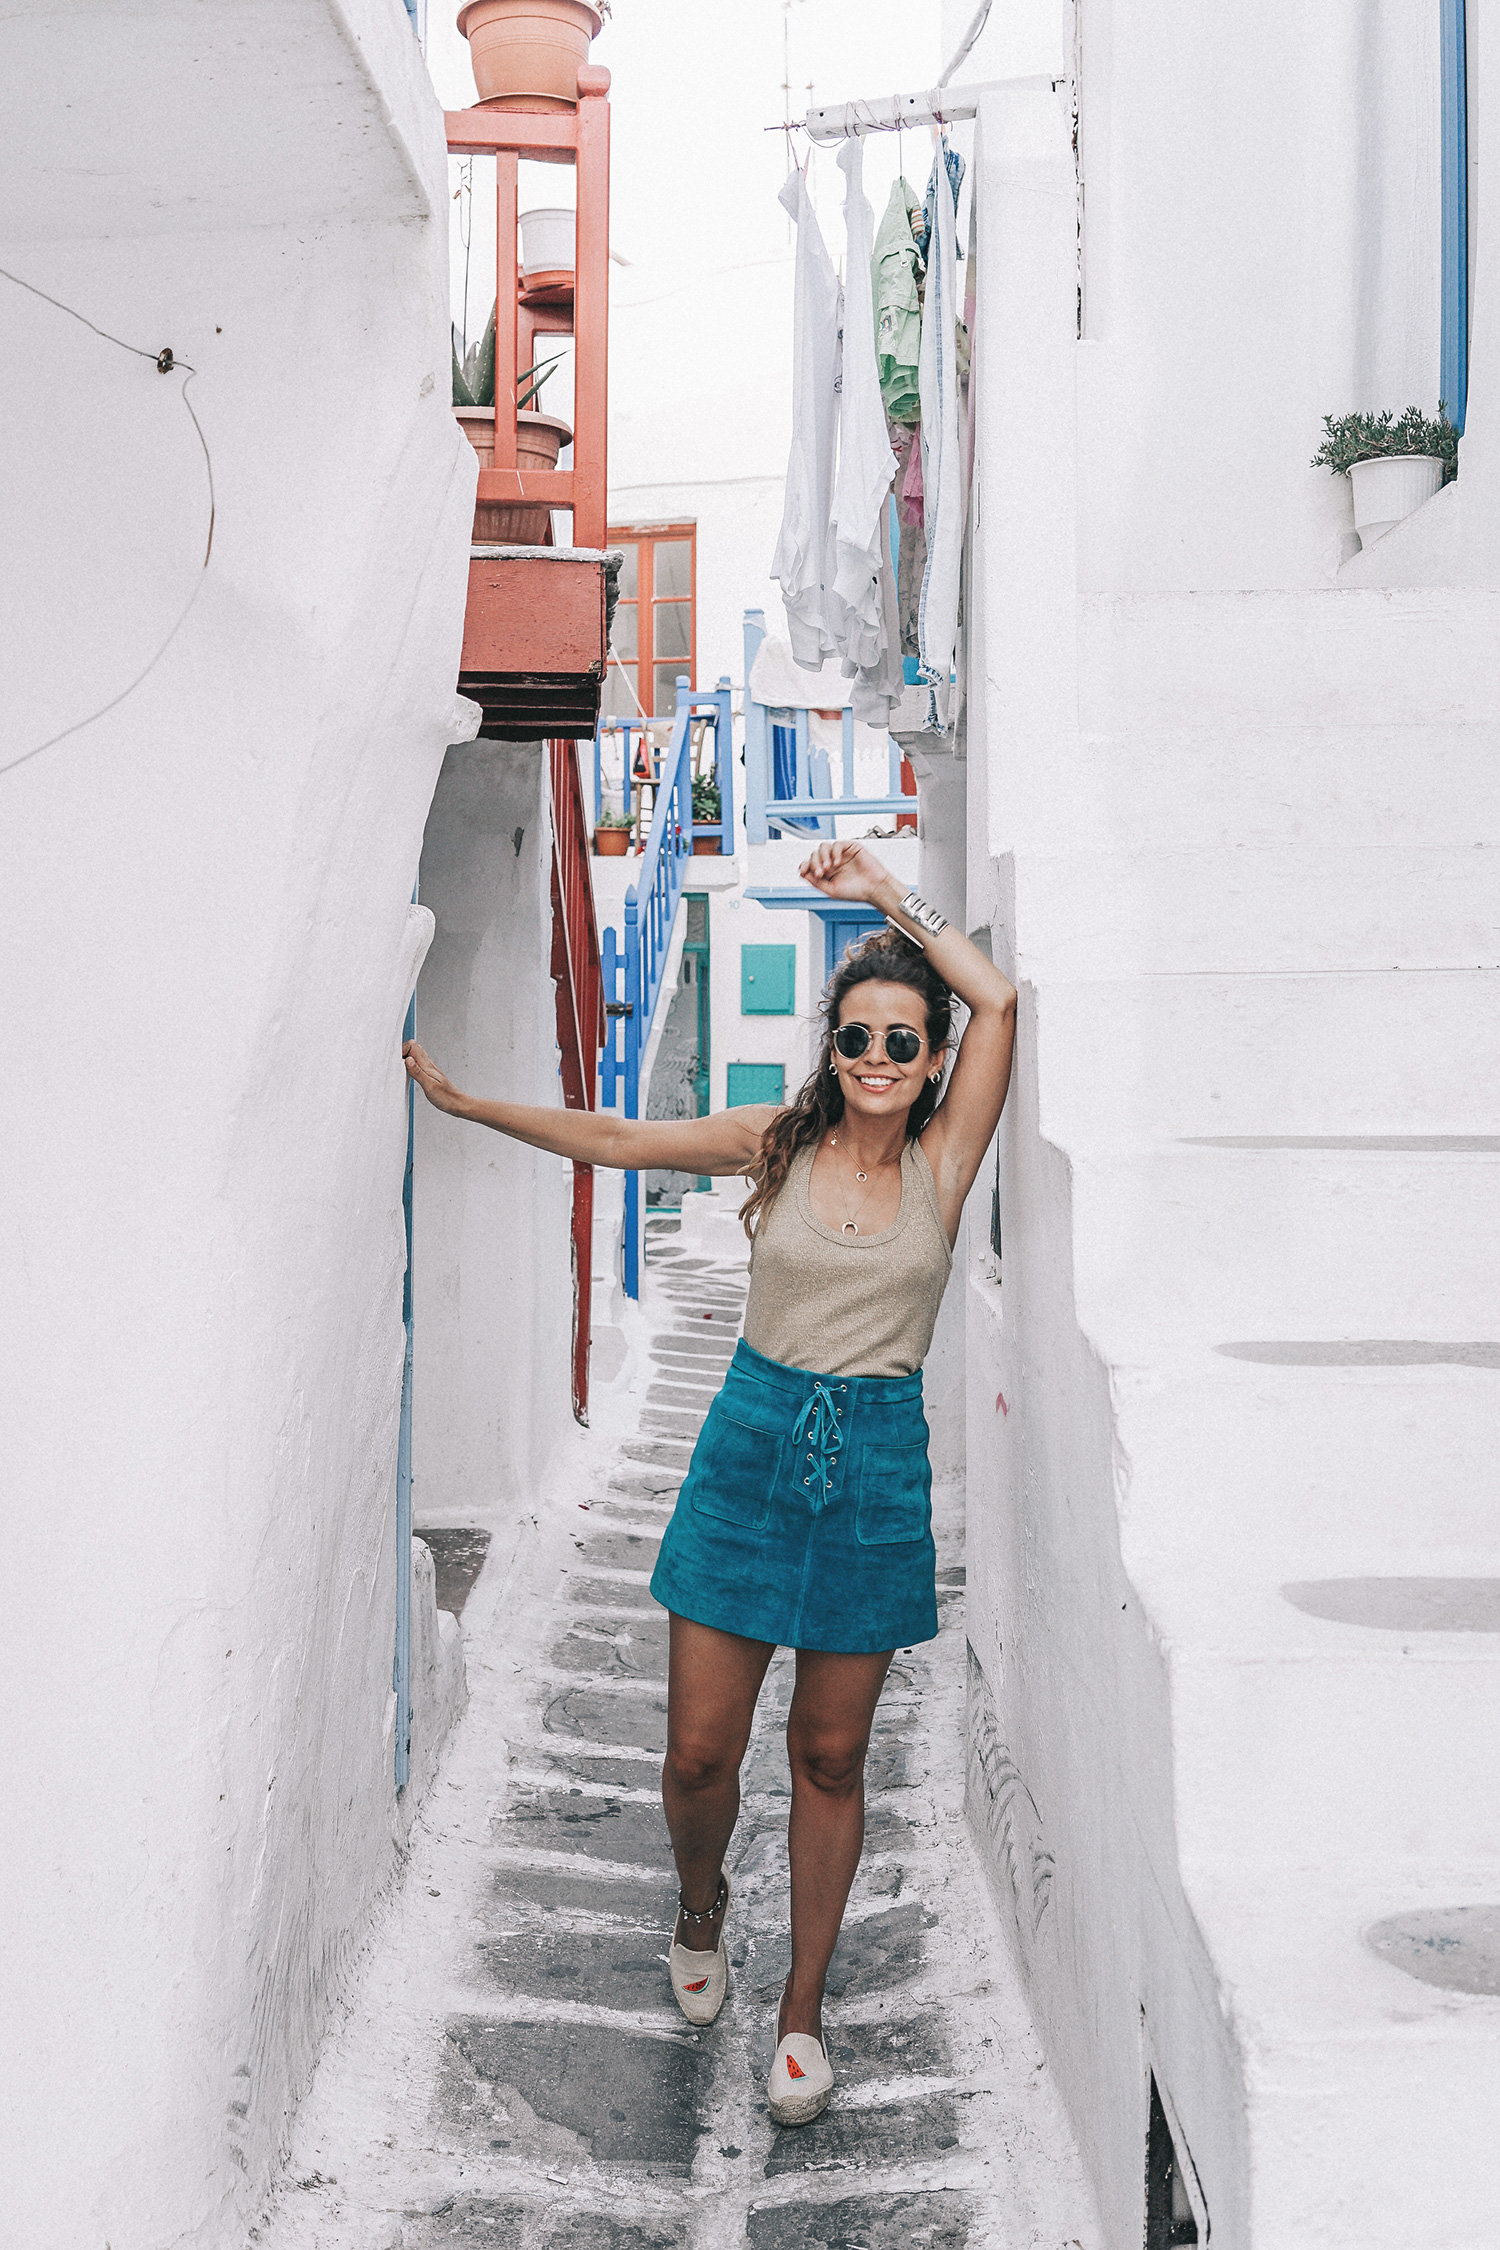 Gold_Top-Metallic_Trend-Suede_Skirt-Turquoise_Skirt-Soludos_Espadrilles-Soludos_Escapes-Mykonos-Greece-Collage_Vintage-Street_Style-105